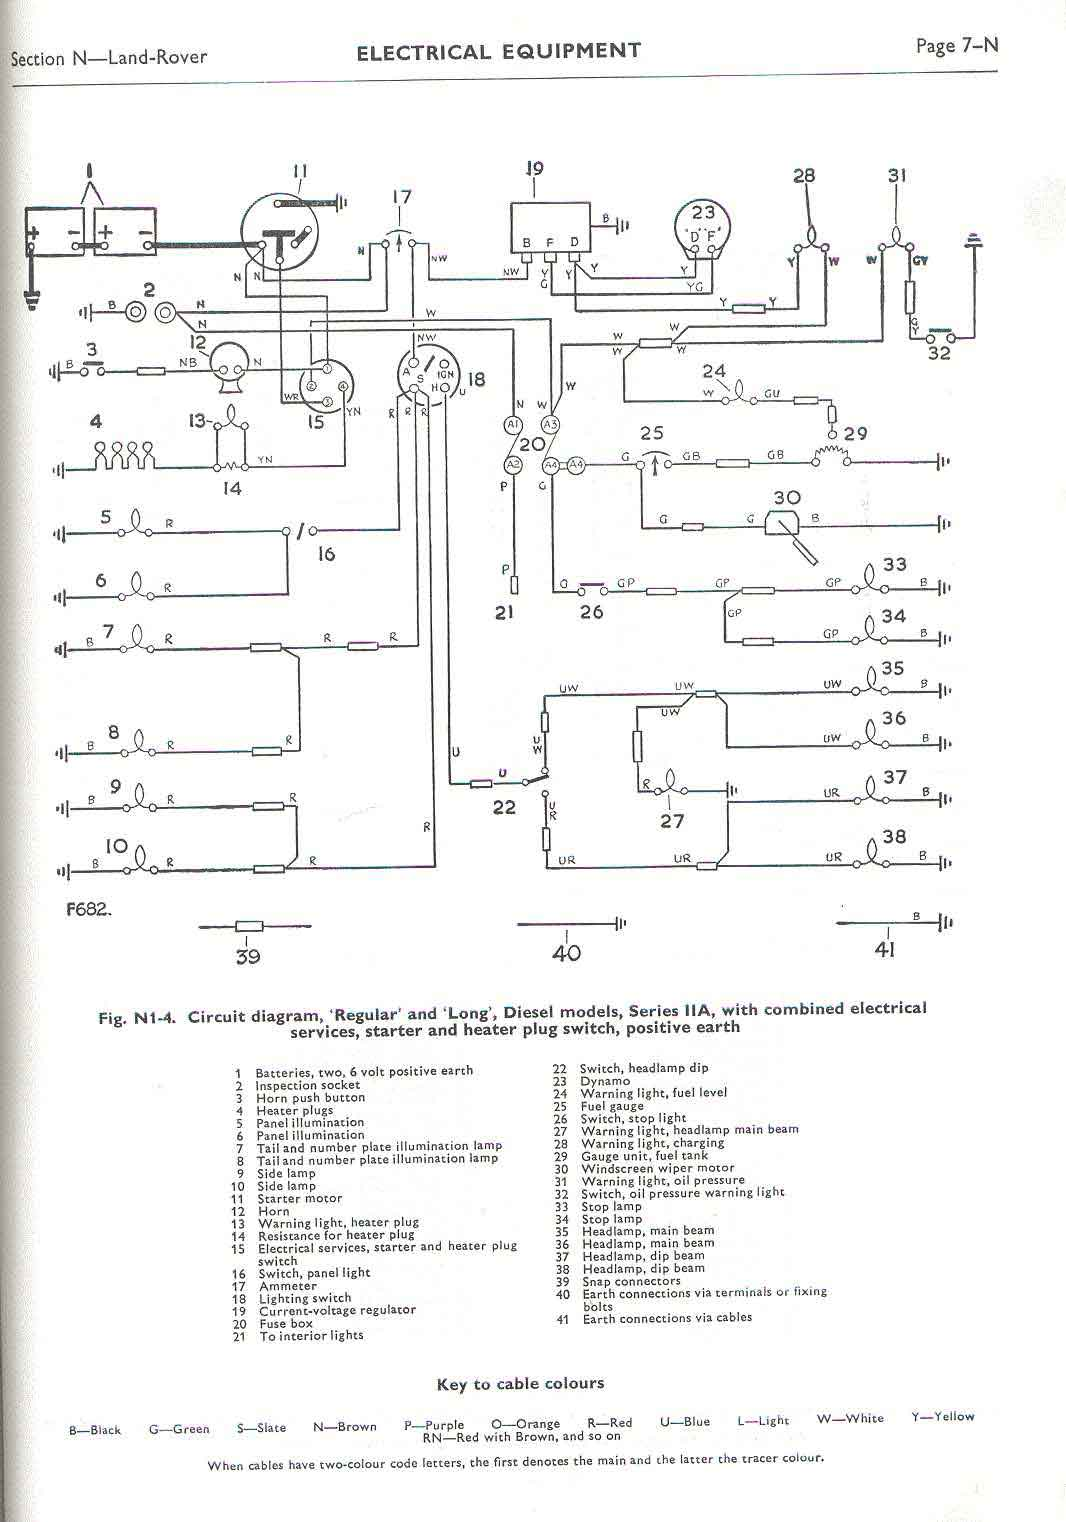 SIIA+VED2 series wiring diagram international 8100 series wiring diagrams outlet wiring diagram series at soozxer.org